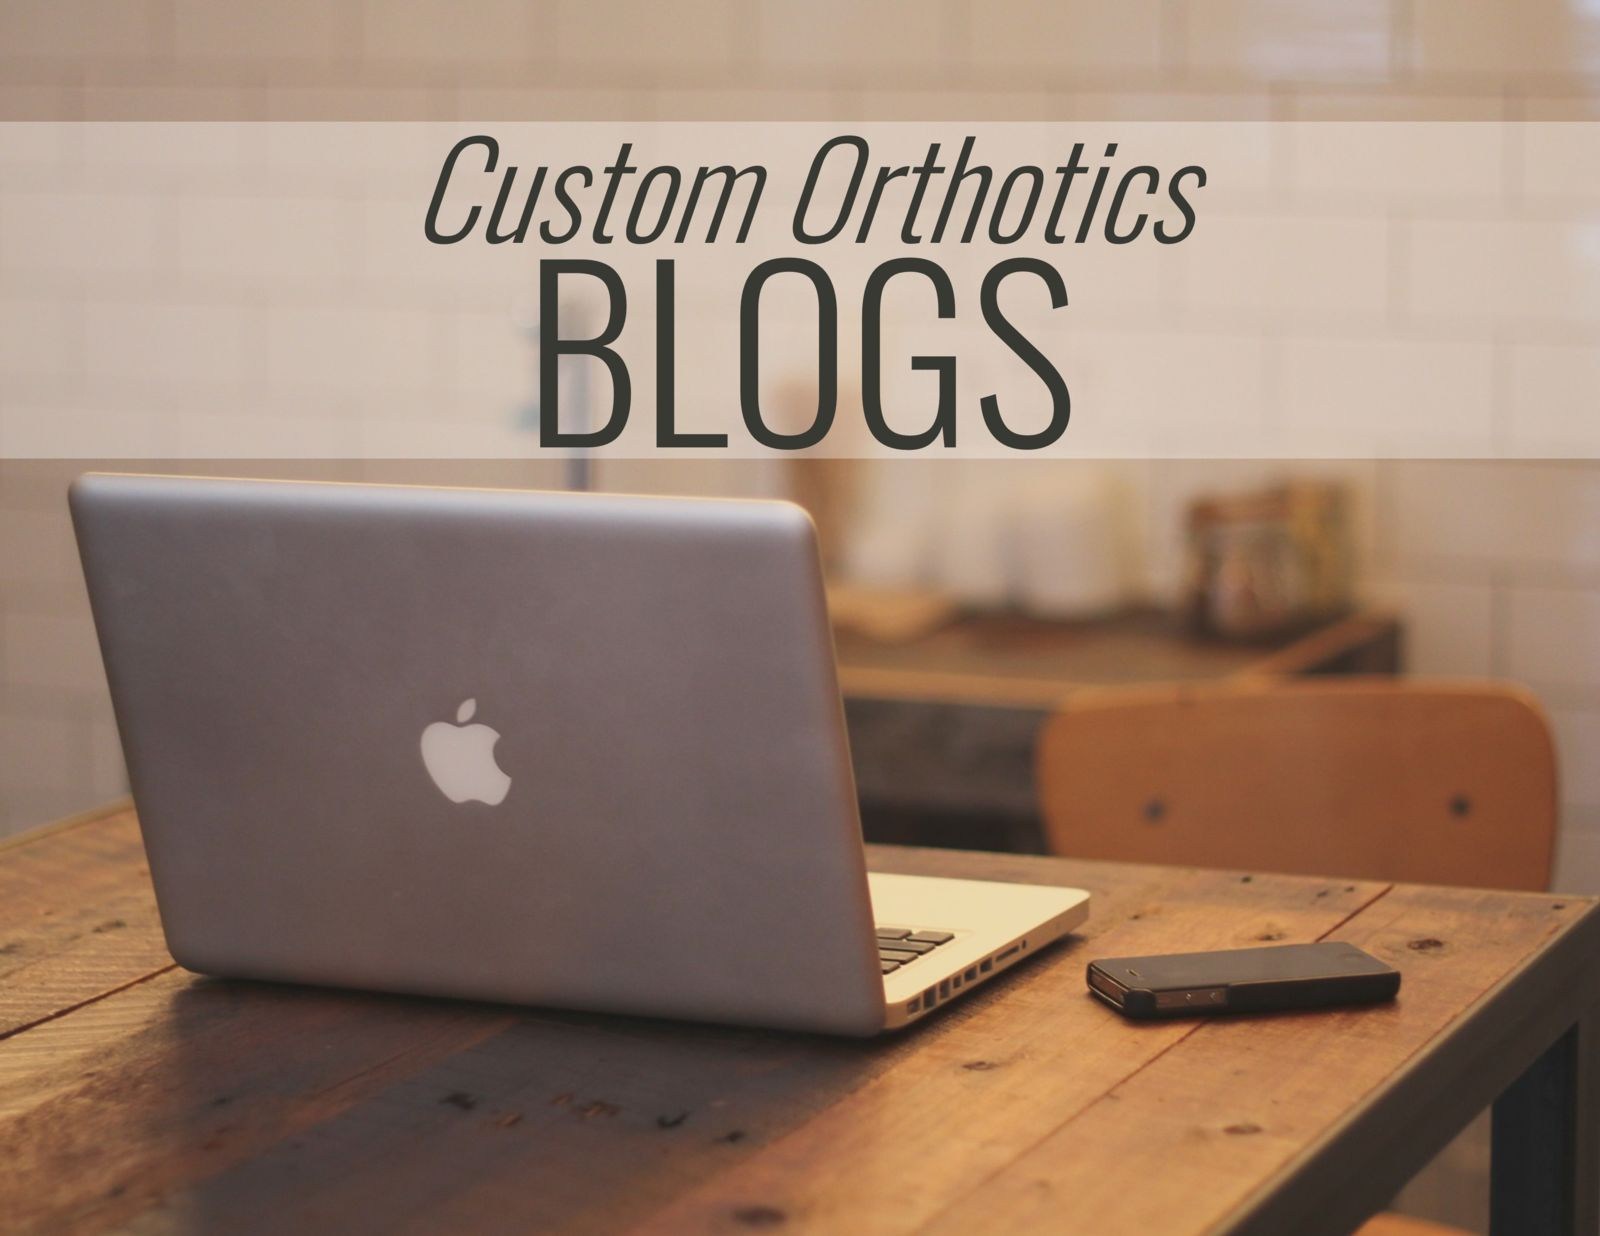 computer on a desk with the words: Custom Orthotics Blogs